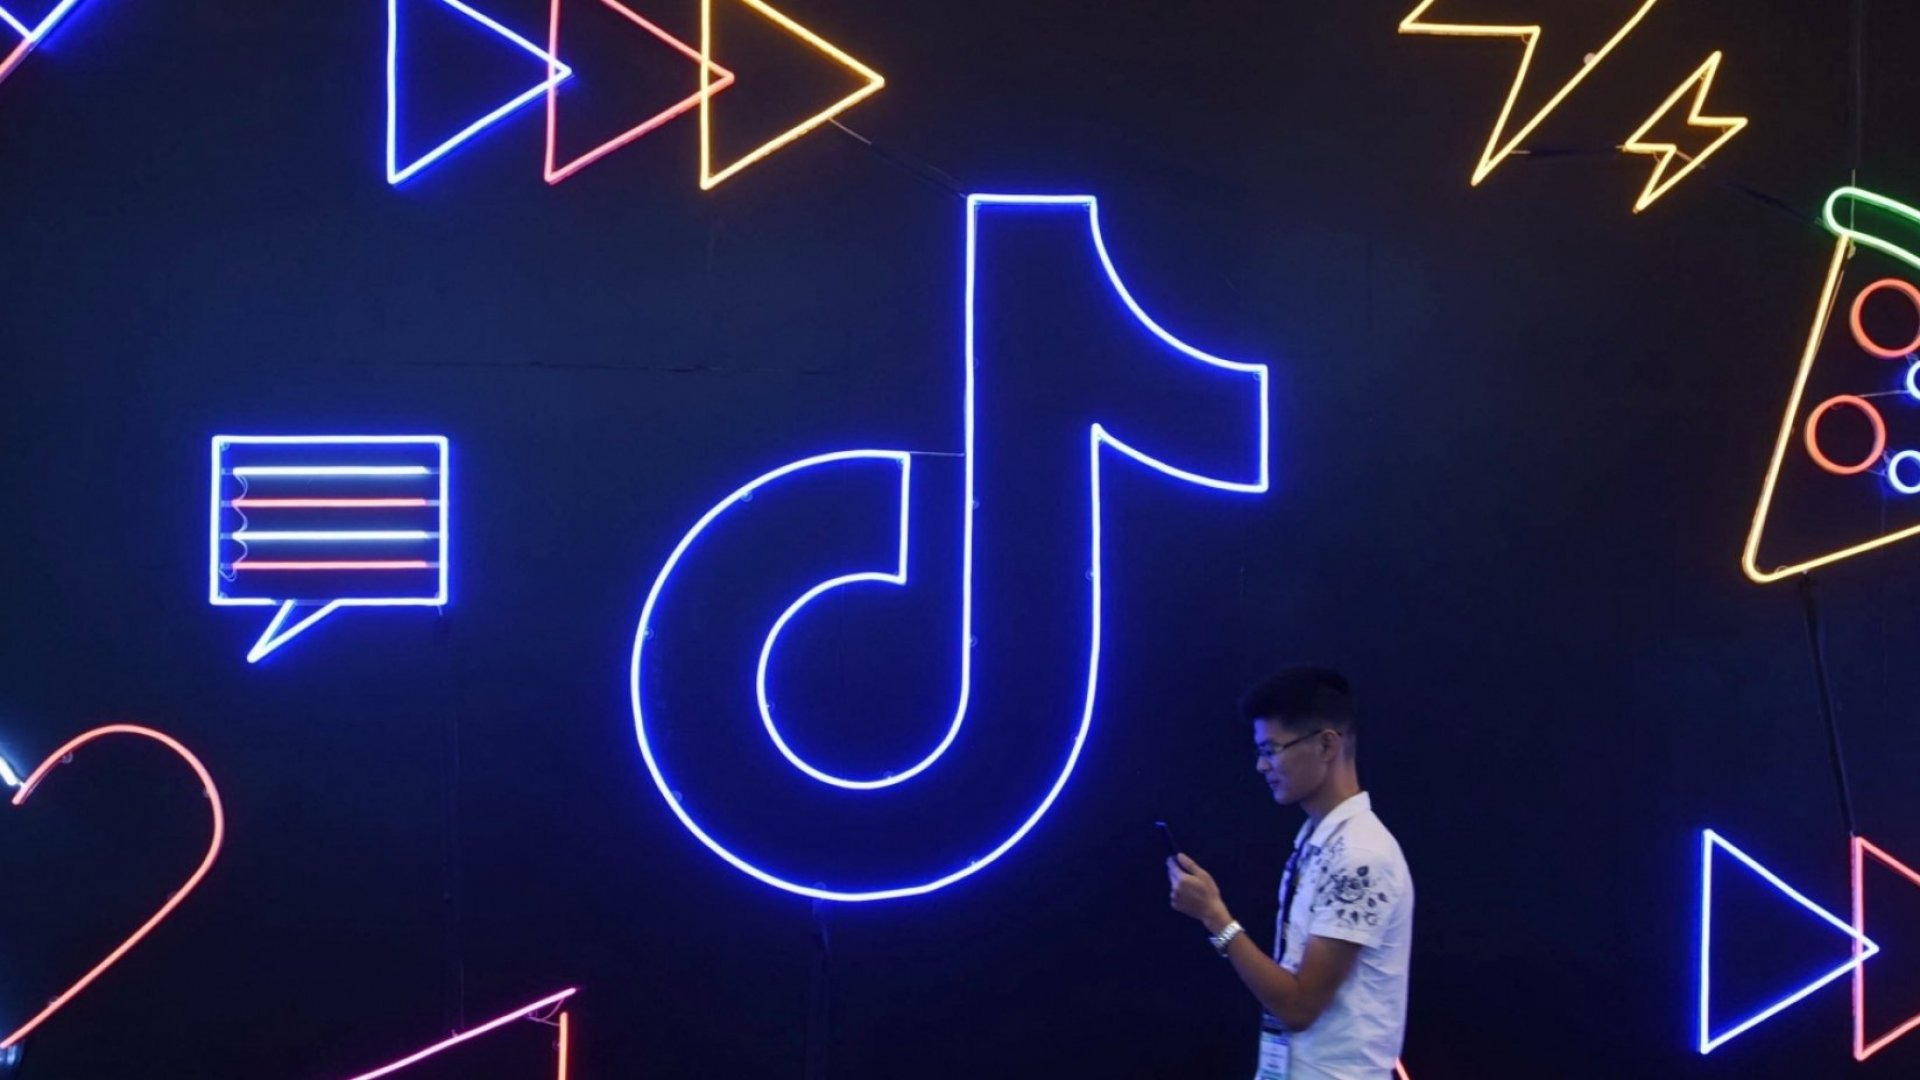 Why Silicon Valley's Giants Are Having a Lot of Trouble Defeating TikTok